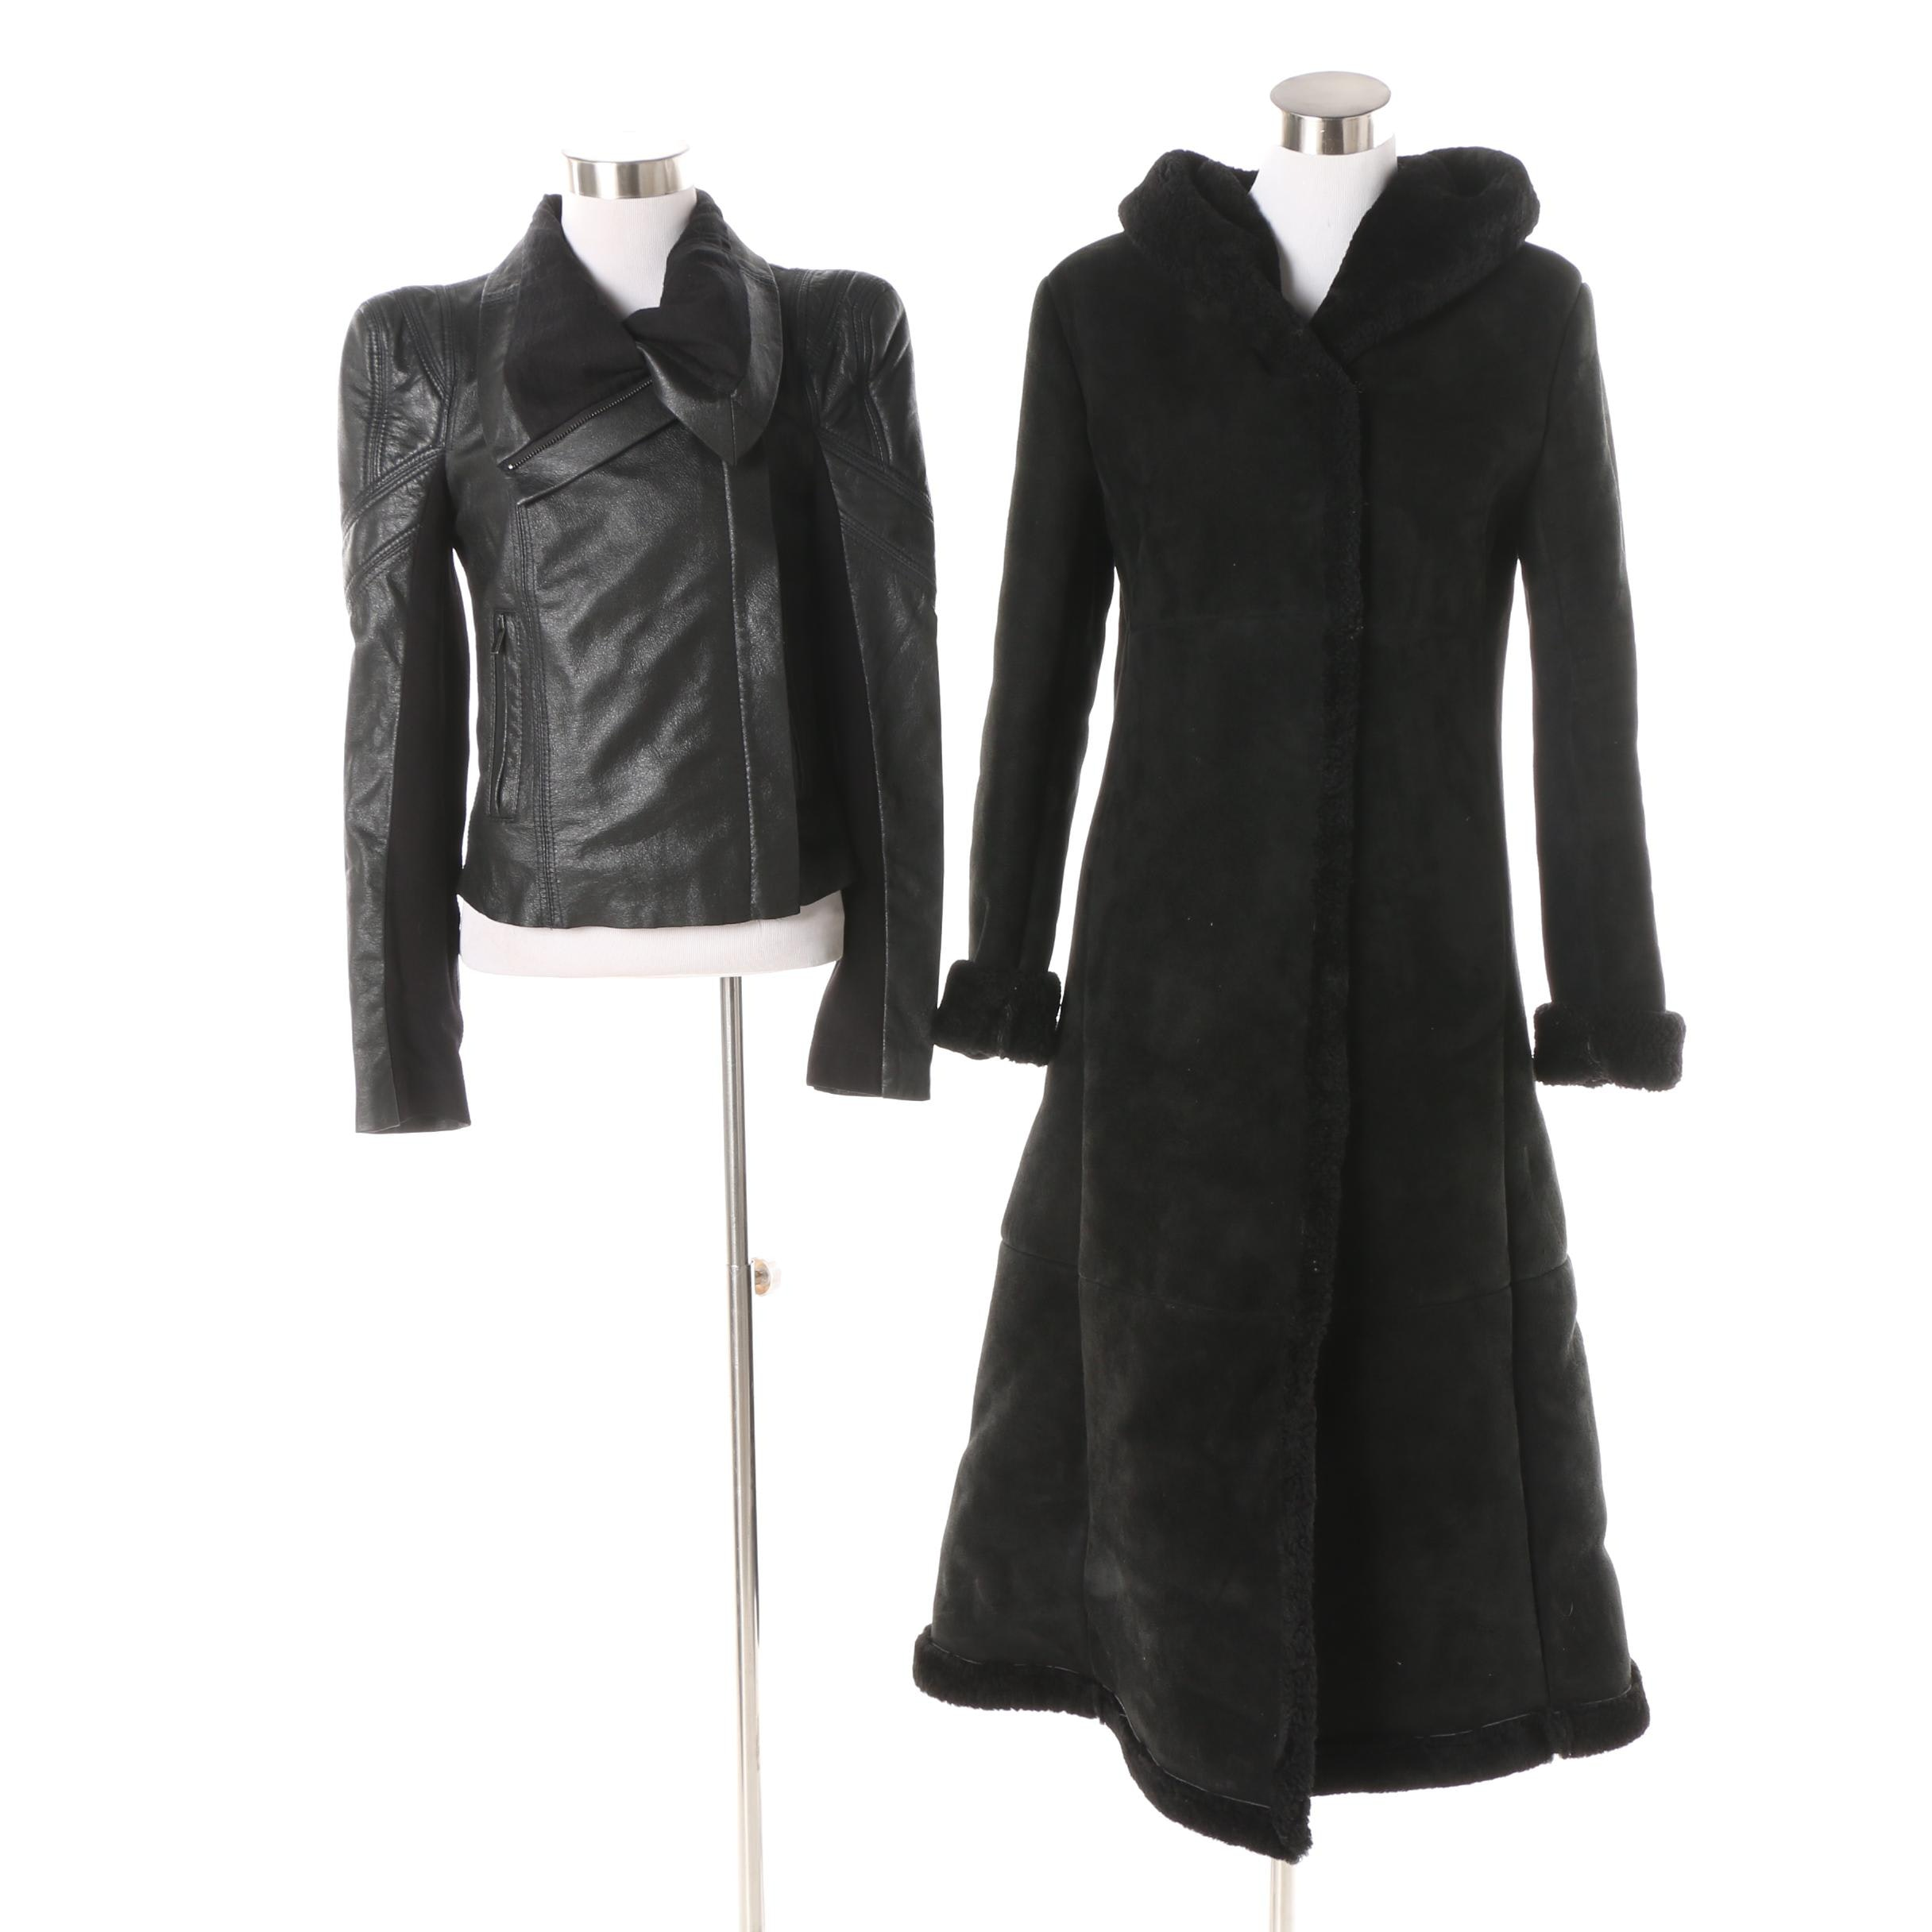 Women's BCBG Max Azria Leather Jacket and Shearling Lined Suede Coat